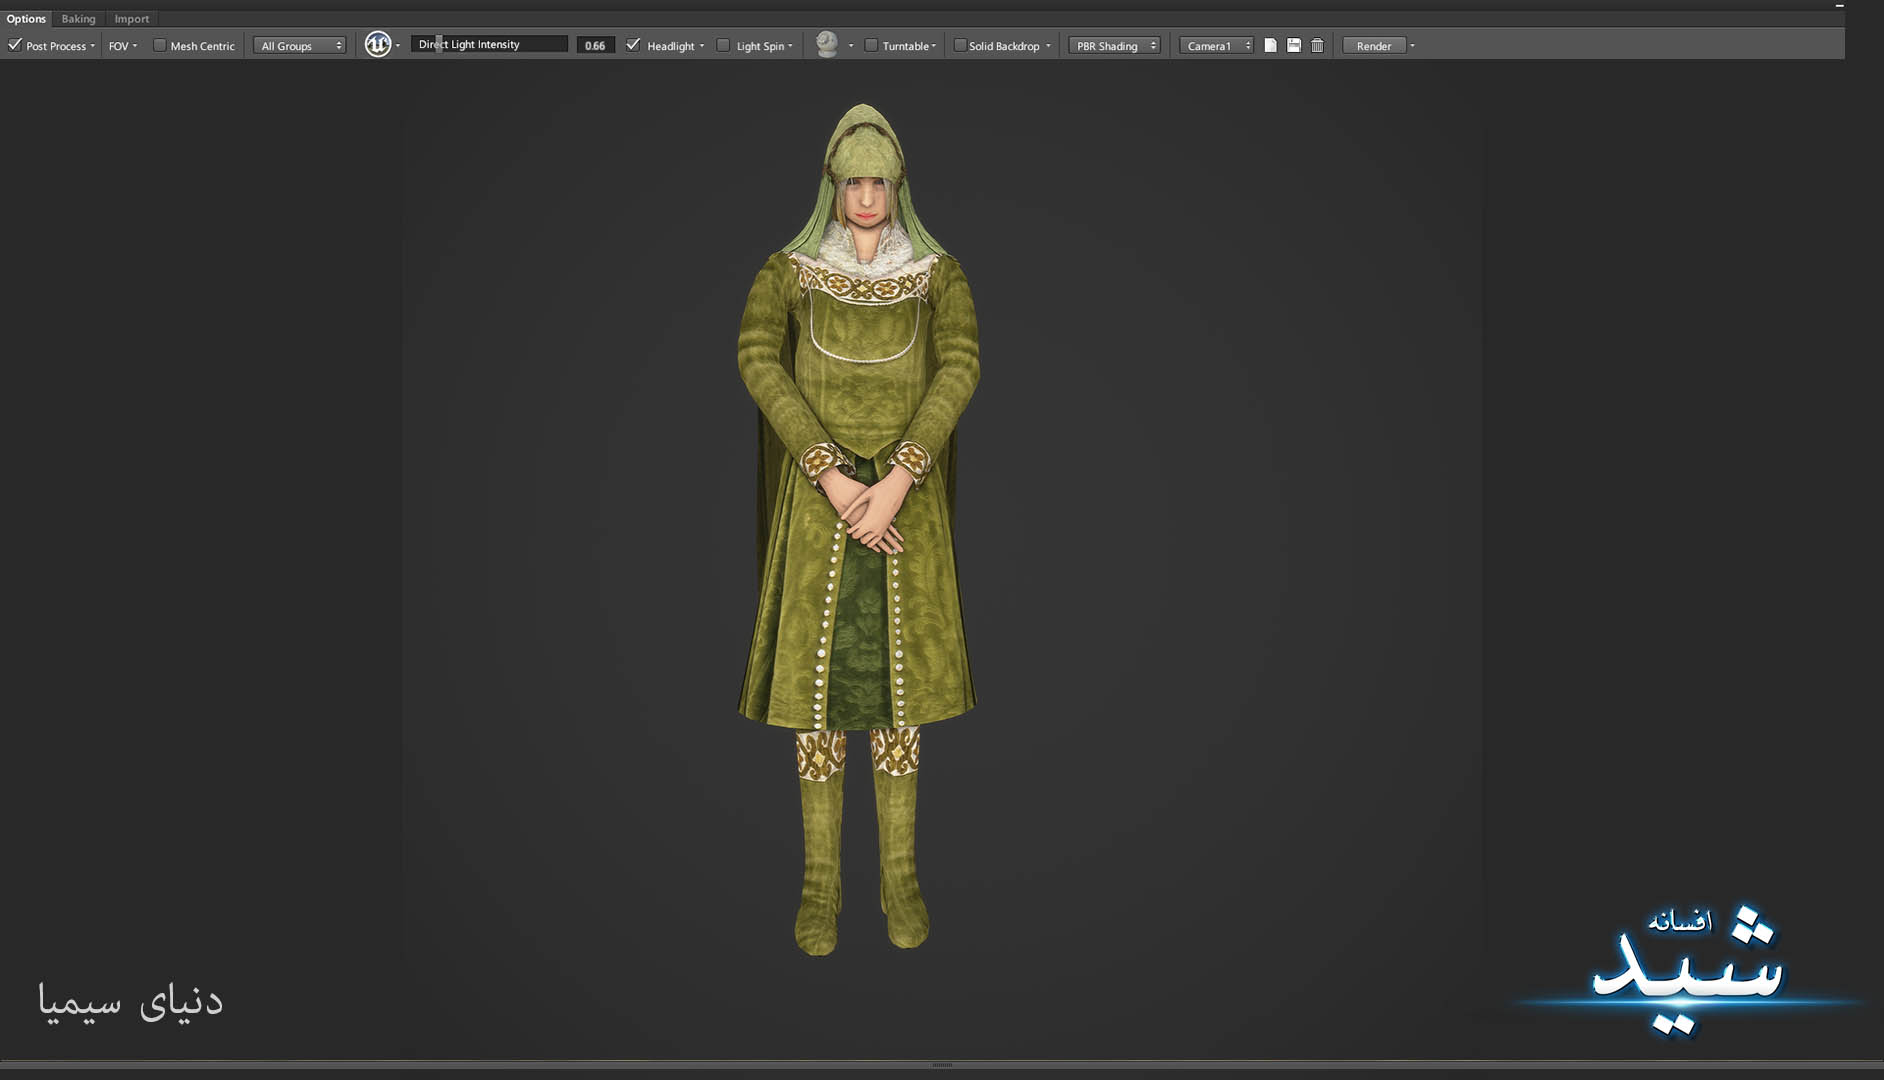 Legend of the light_Healer Character Texturing_Hadi Beheshti CG Artist Game Designer